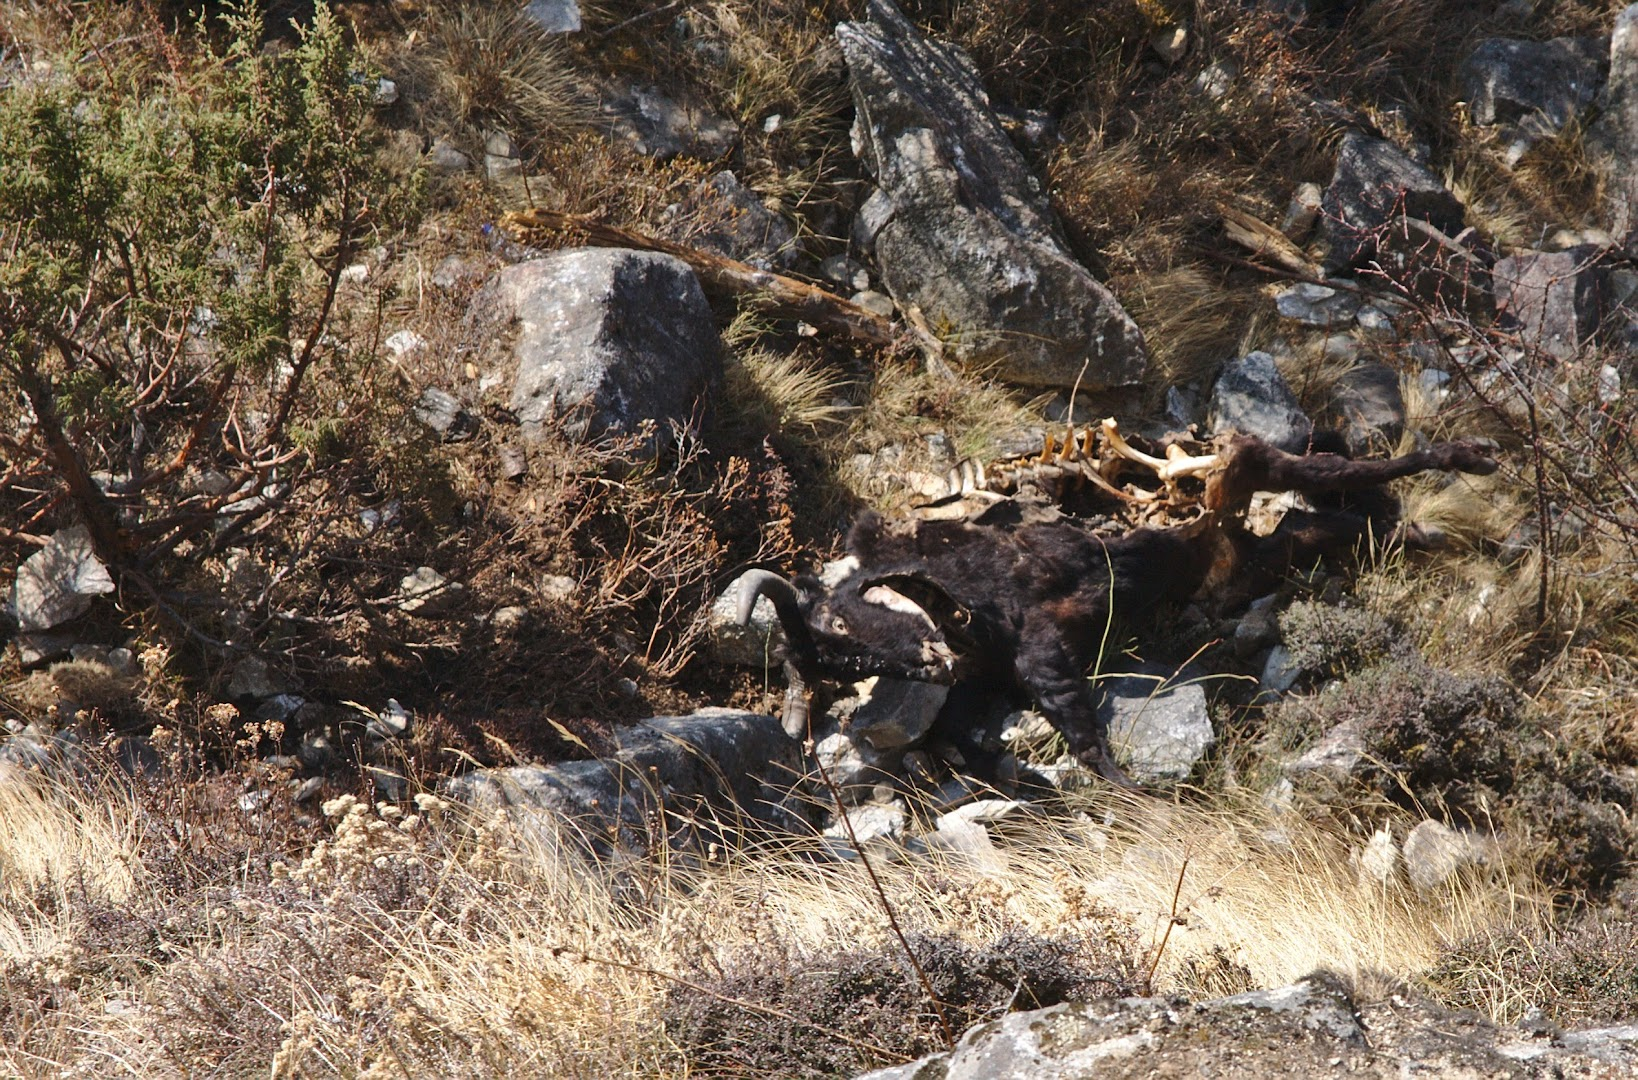 When Yaks fall down, they are just left there